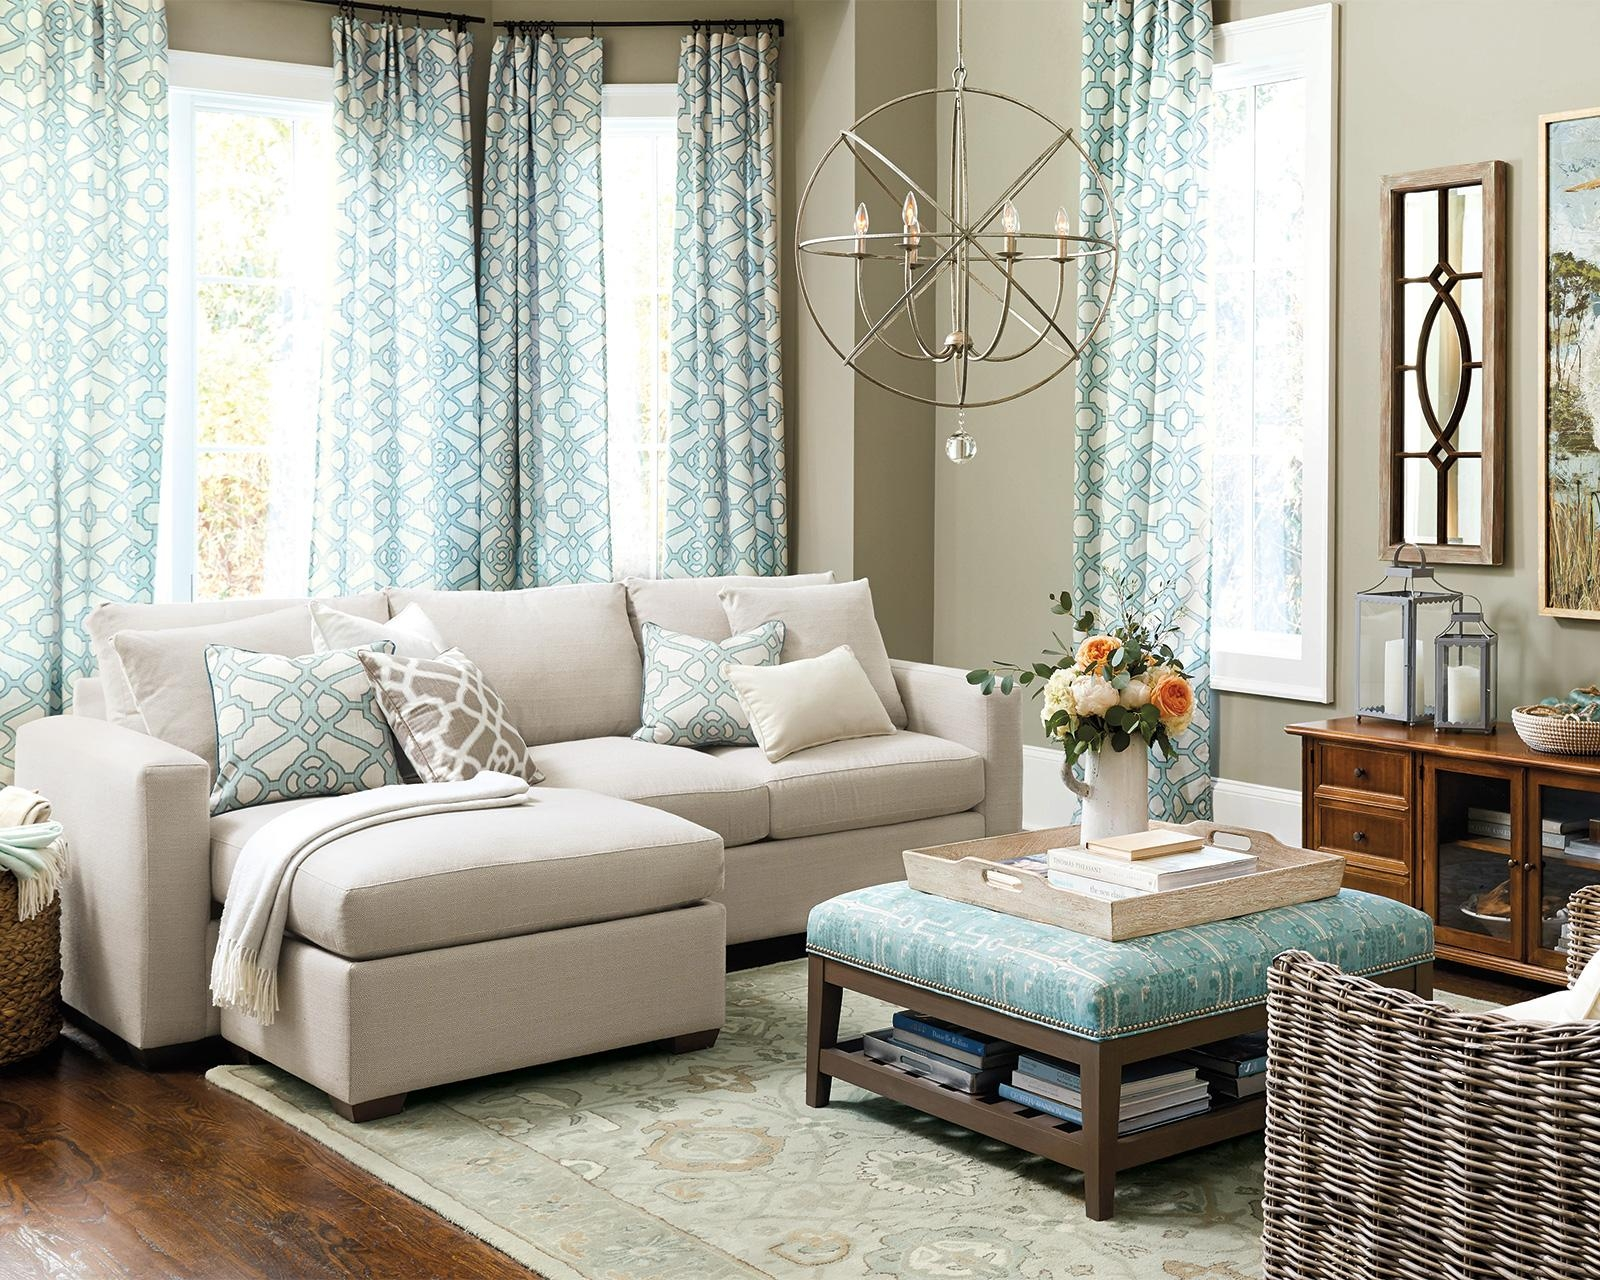 How To Match A Coffee Table To Your Sectional – How To Decorate Throughout Coffee Table For Sectional Sofa (View 4 of 15)